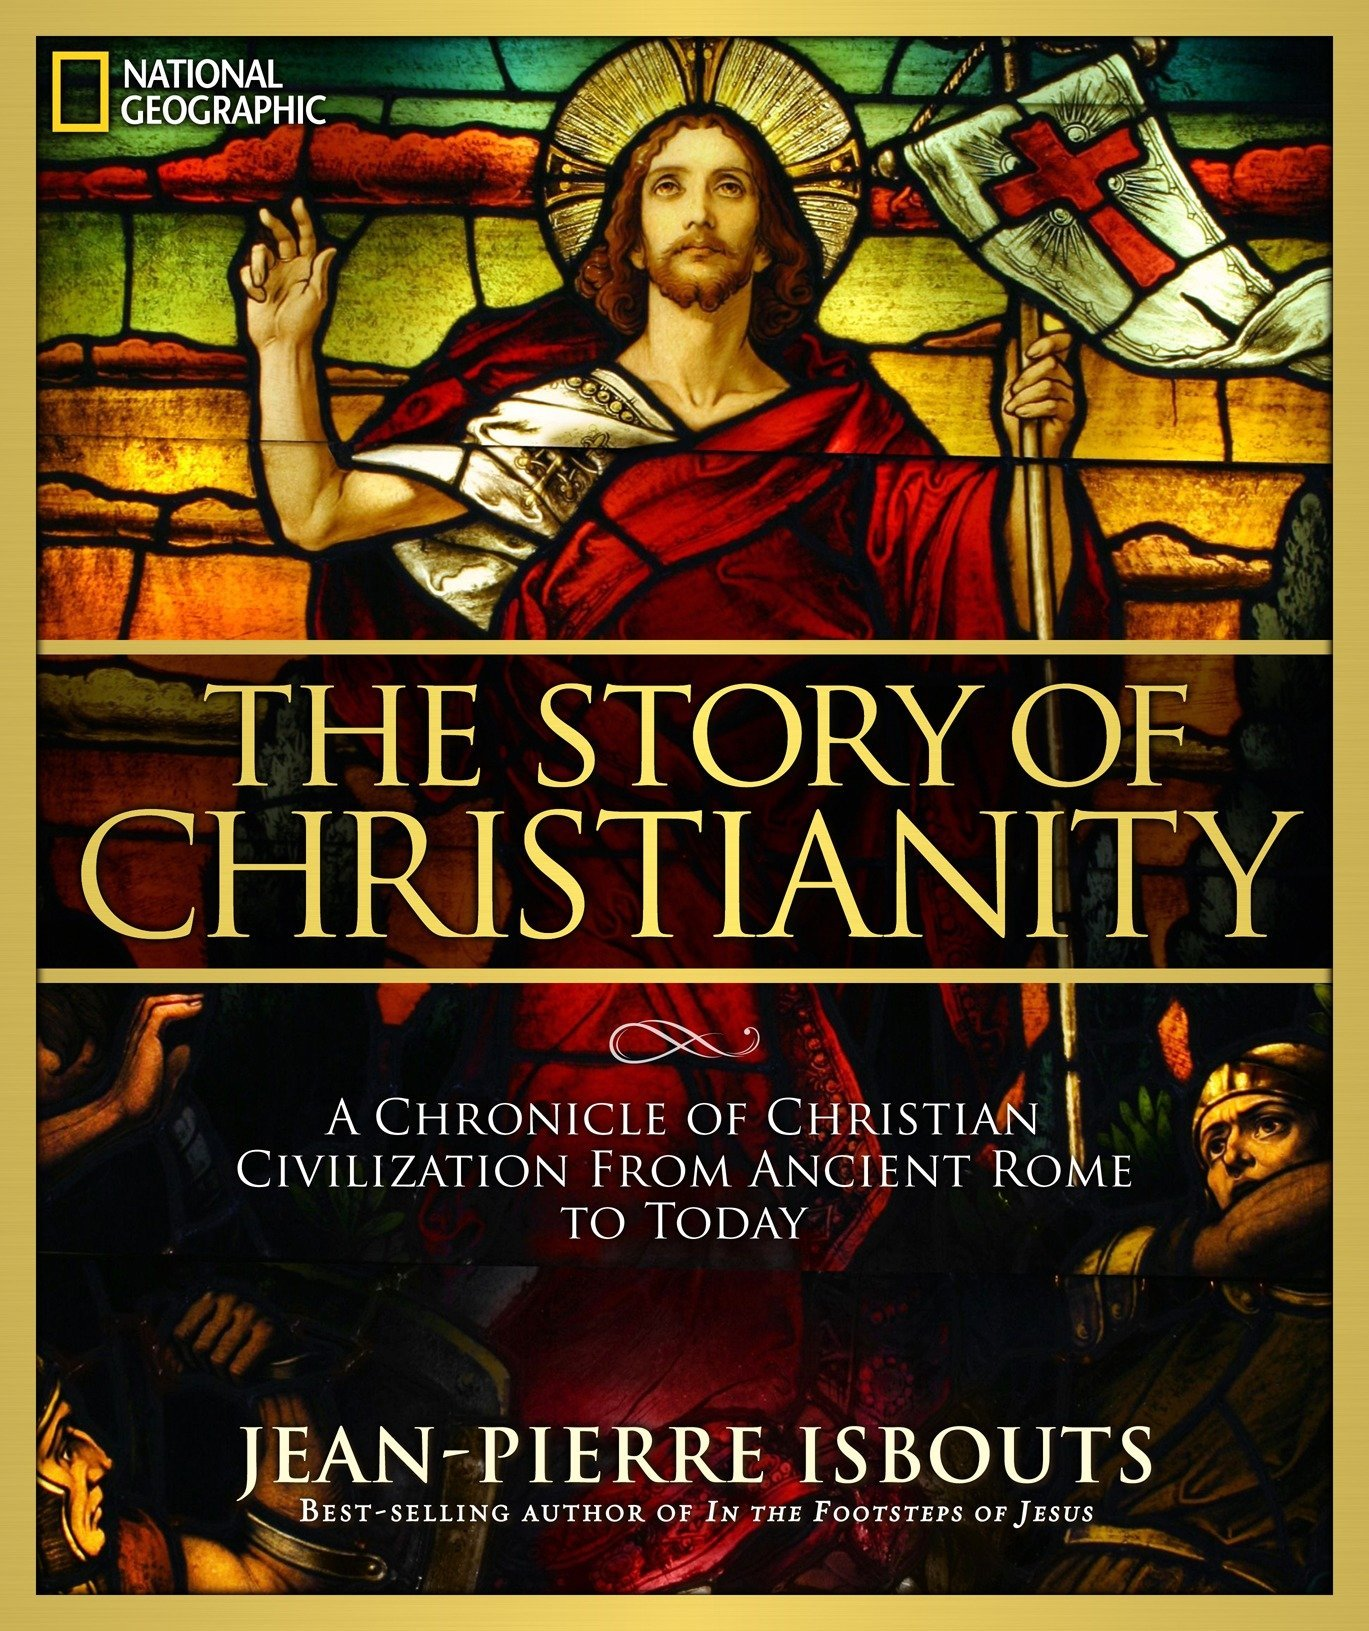 The Story of Christianity: A Chronicle of Christian Civilization from Ancient Rome to Today (Inglese) Copertina rigida – 27 ott 2010 Jean-Pierre Isbouts Natl Geographic Society 1426213875 HISTORY / World